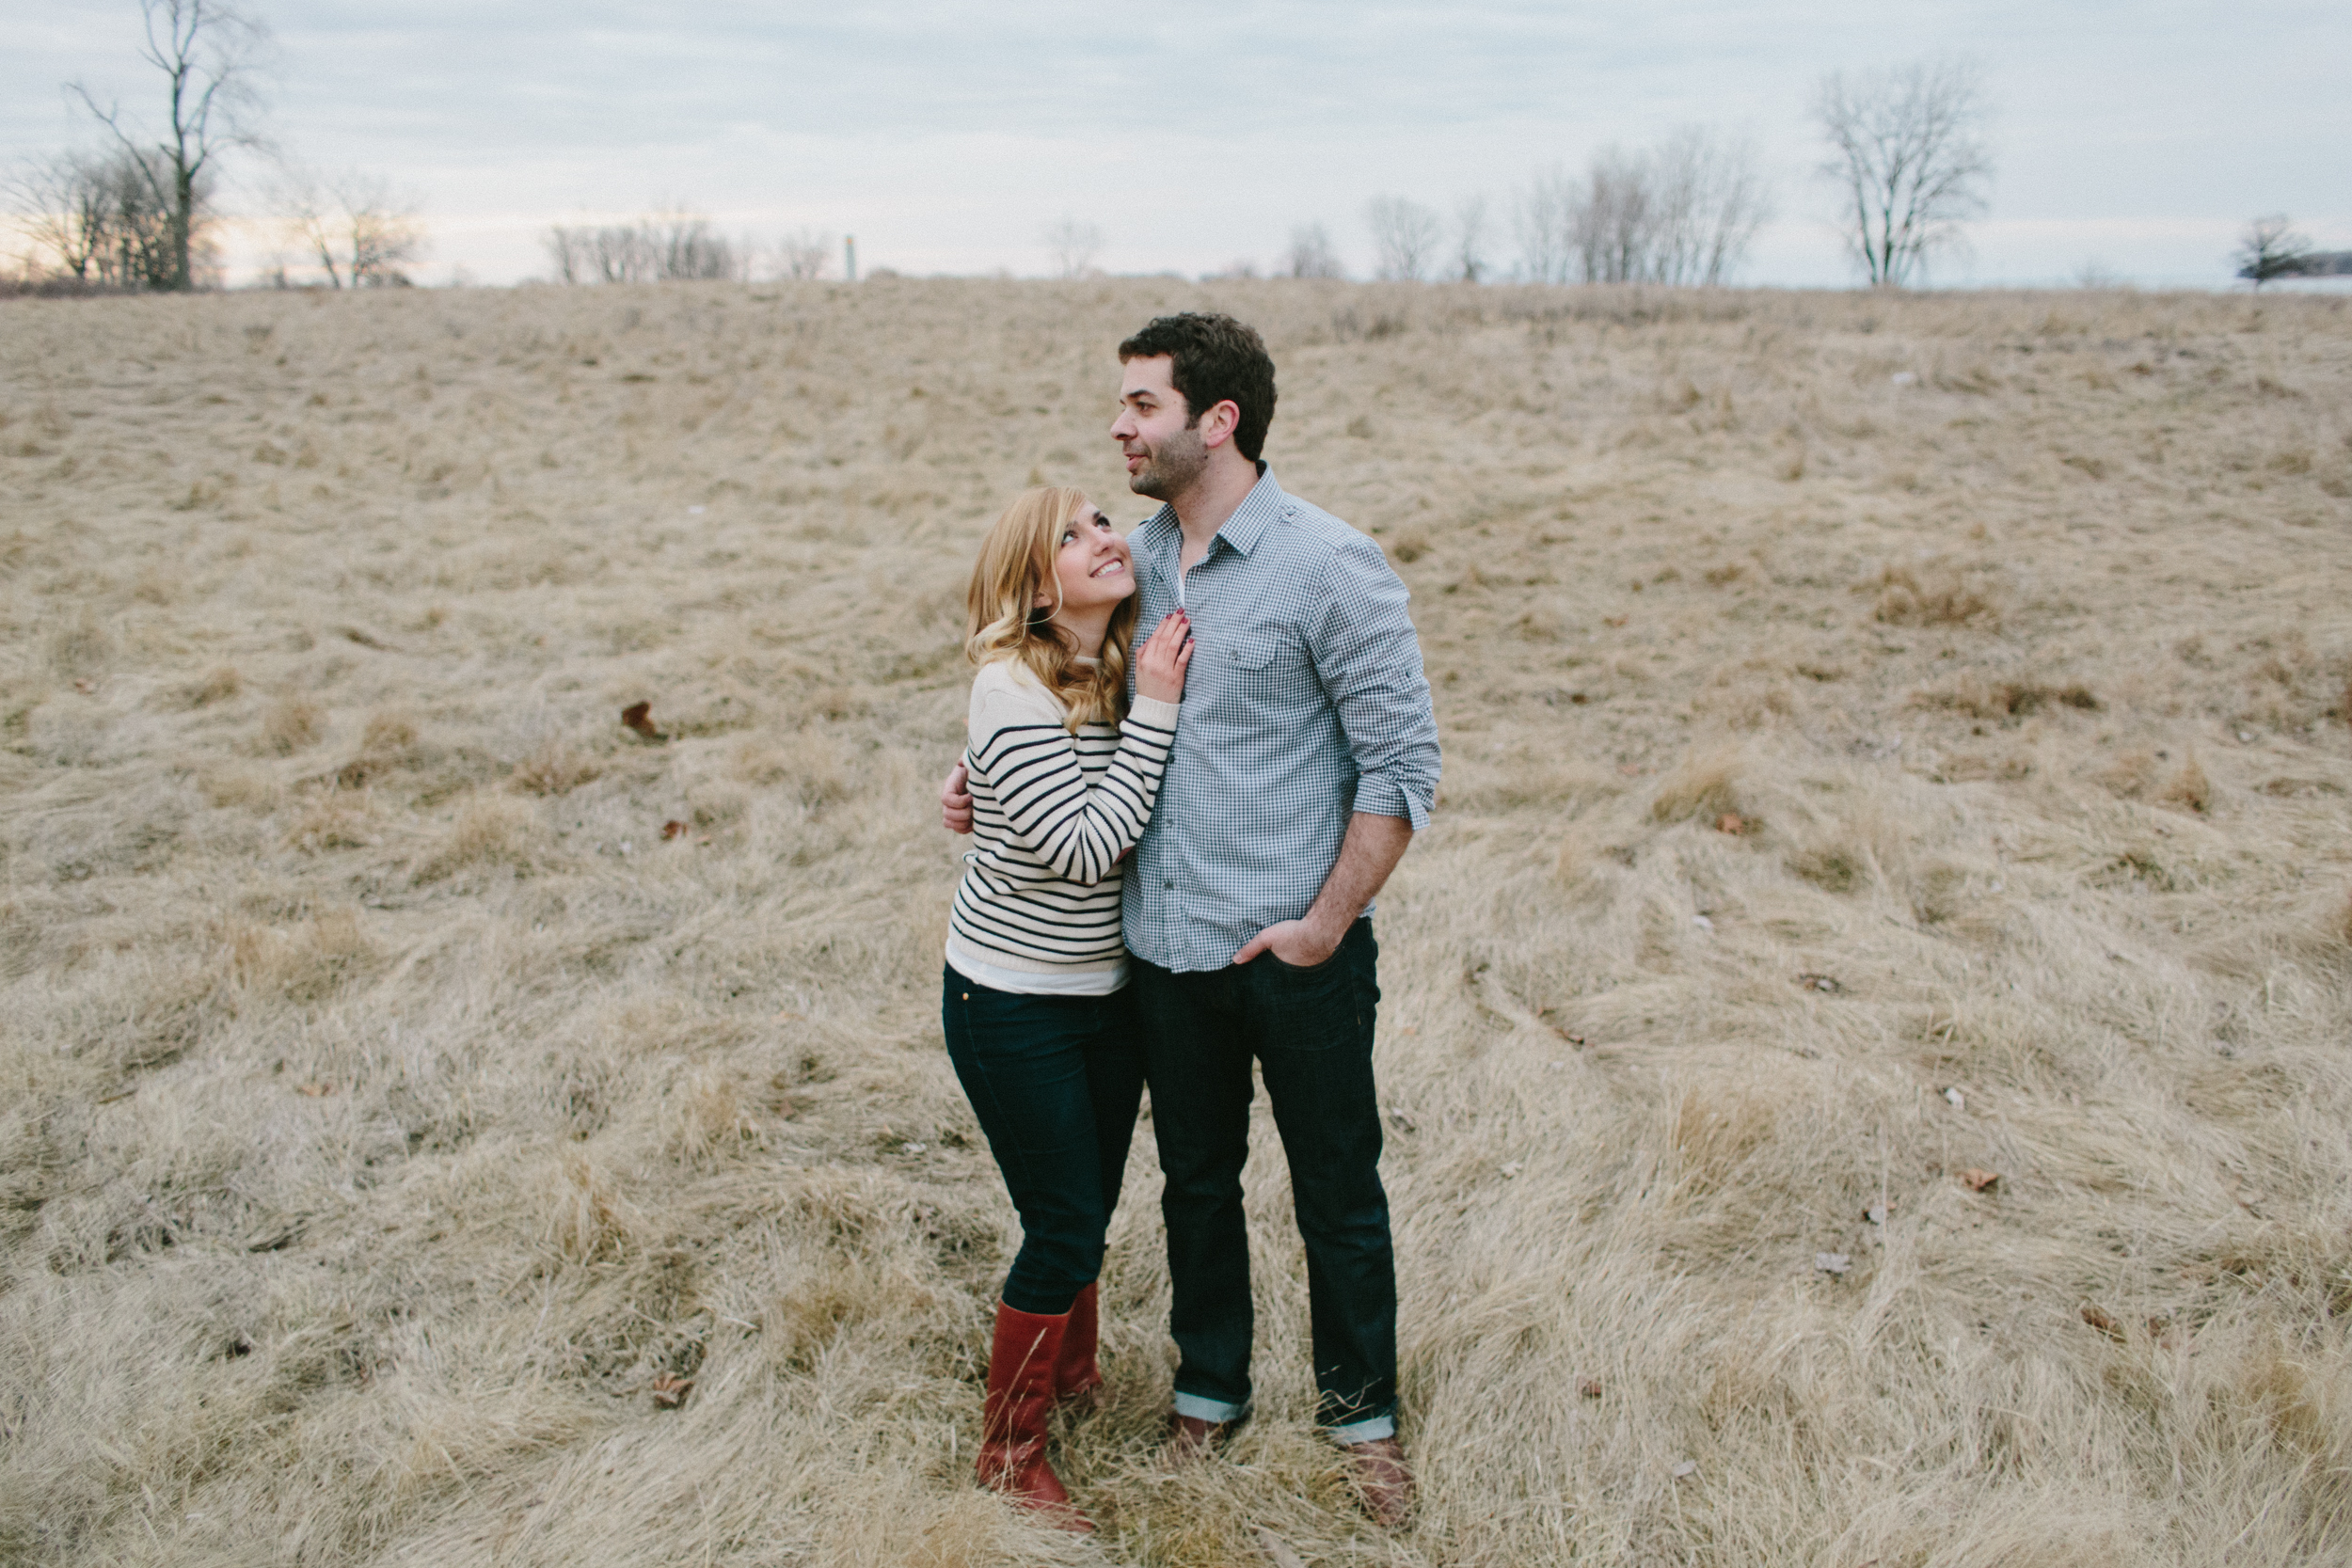 Detroit Michigan Belle Isle Engagement photos Lifestyle Wedding Photographer Mae Stier Candid Photography-011.jpg